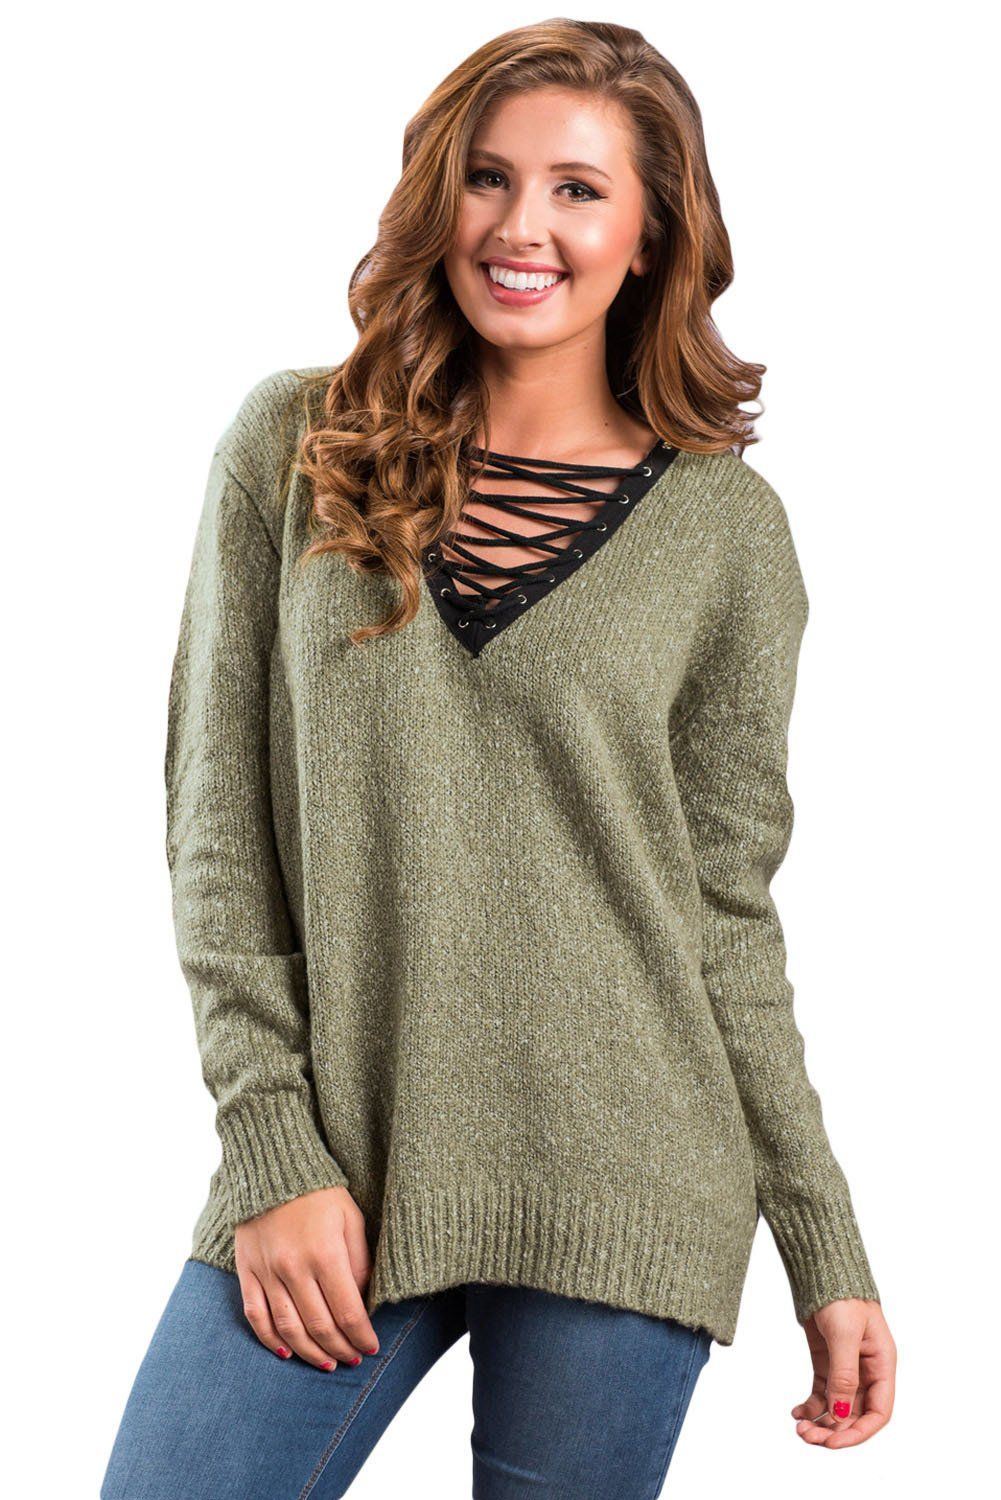 Chicloth Olive Chic Long Sleeve Sweater with Lace up Neckline - XL   Olive  Sweater Outfits 068279909